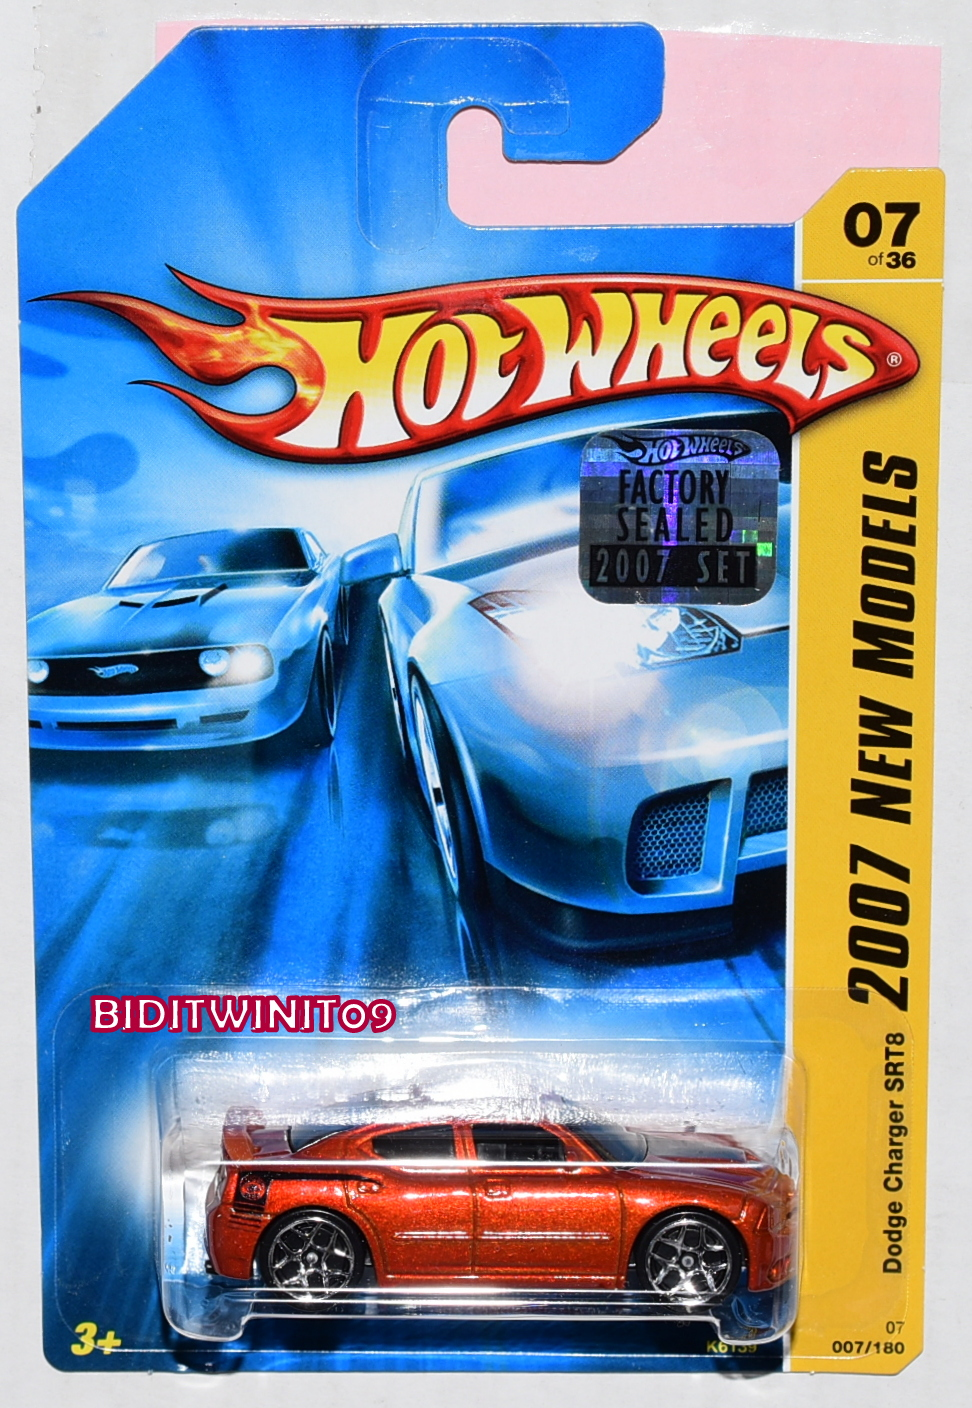 HOT WHEELS 2007 NEW MODELS DODGE CHARGER SRT8 #07/36 RED FACTORY SEALED